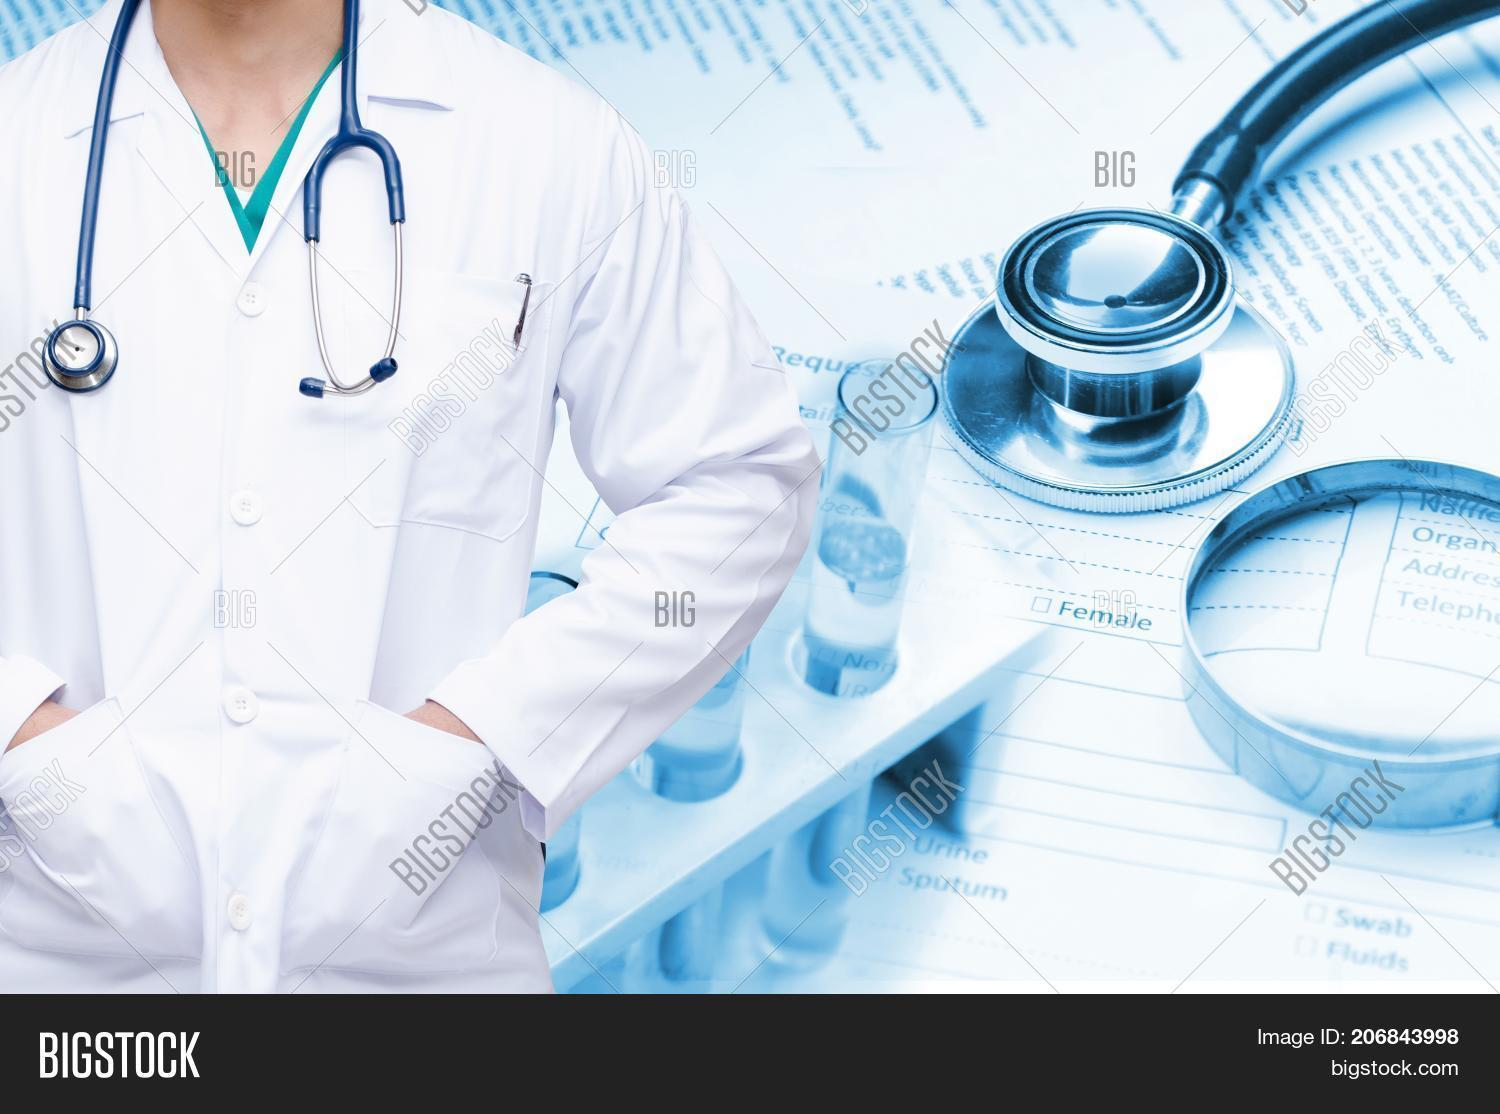 Smart Doctor Image & Photo (Free Trial)   Bigstock on anatomy test forms, medical pathology lab results chart, blood work order forms, blank laboratory forms, medical lab tests, quest lab test order forms, medical test results, laboratory test request forms, electrical test forms, laboratory blood requisition forms, urinalysis test forms, psychology test forms,